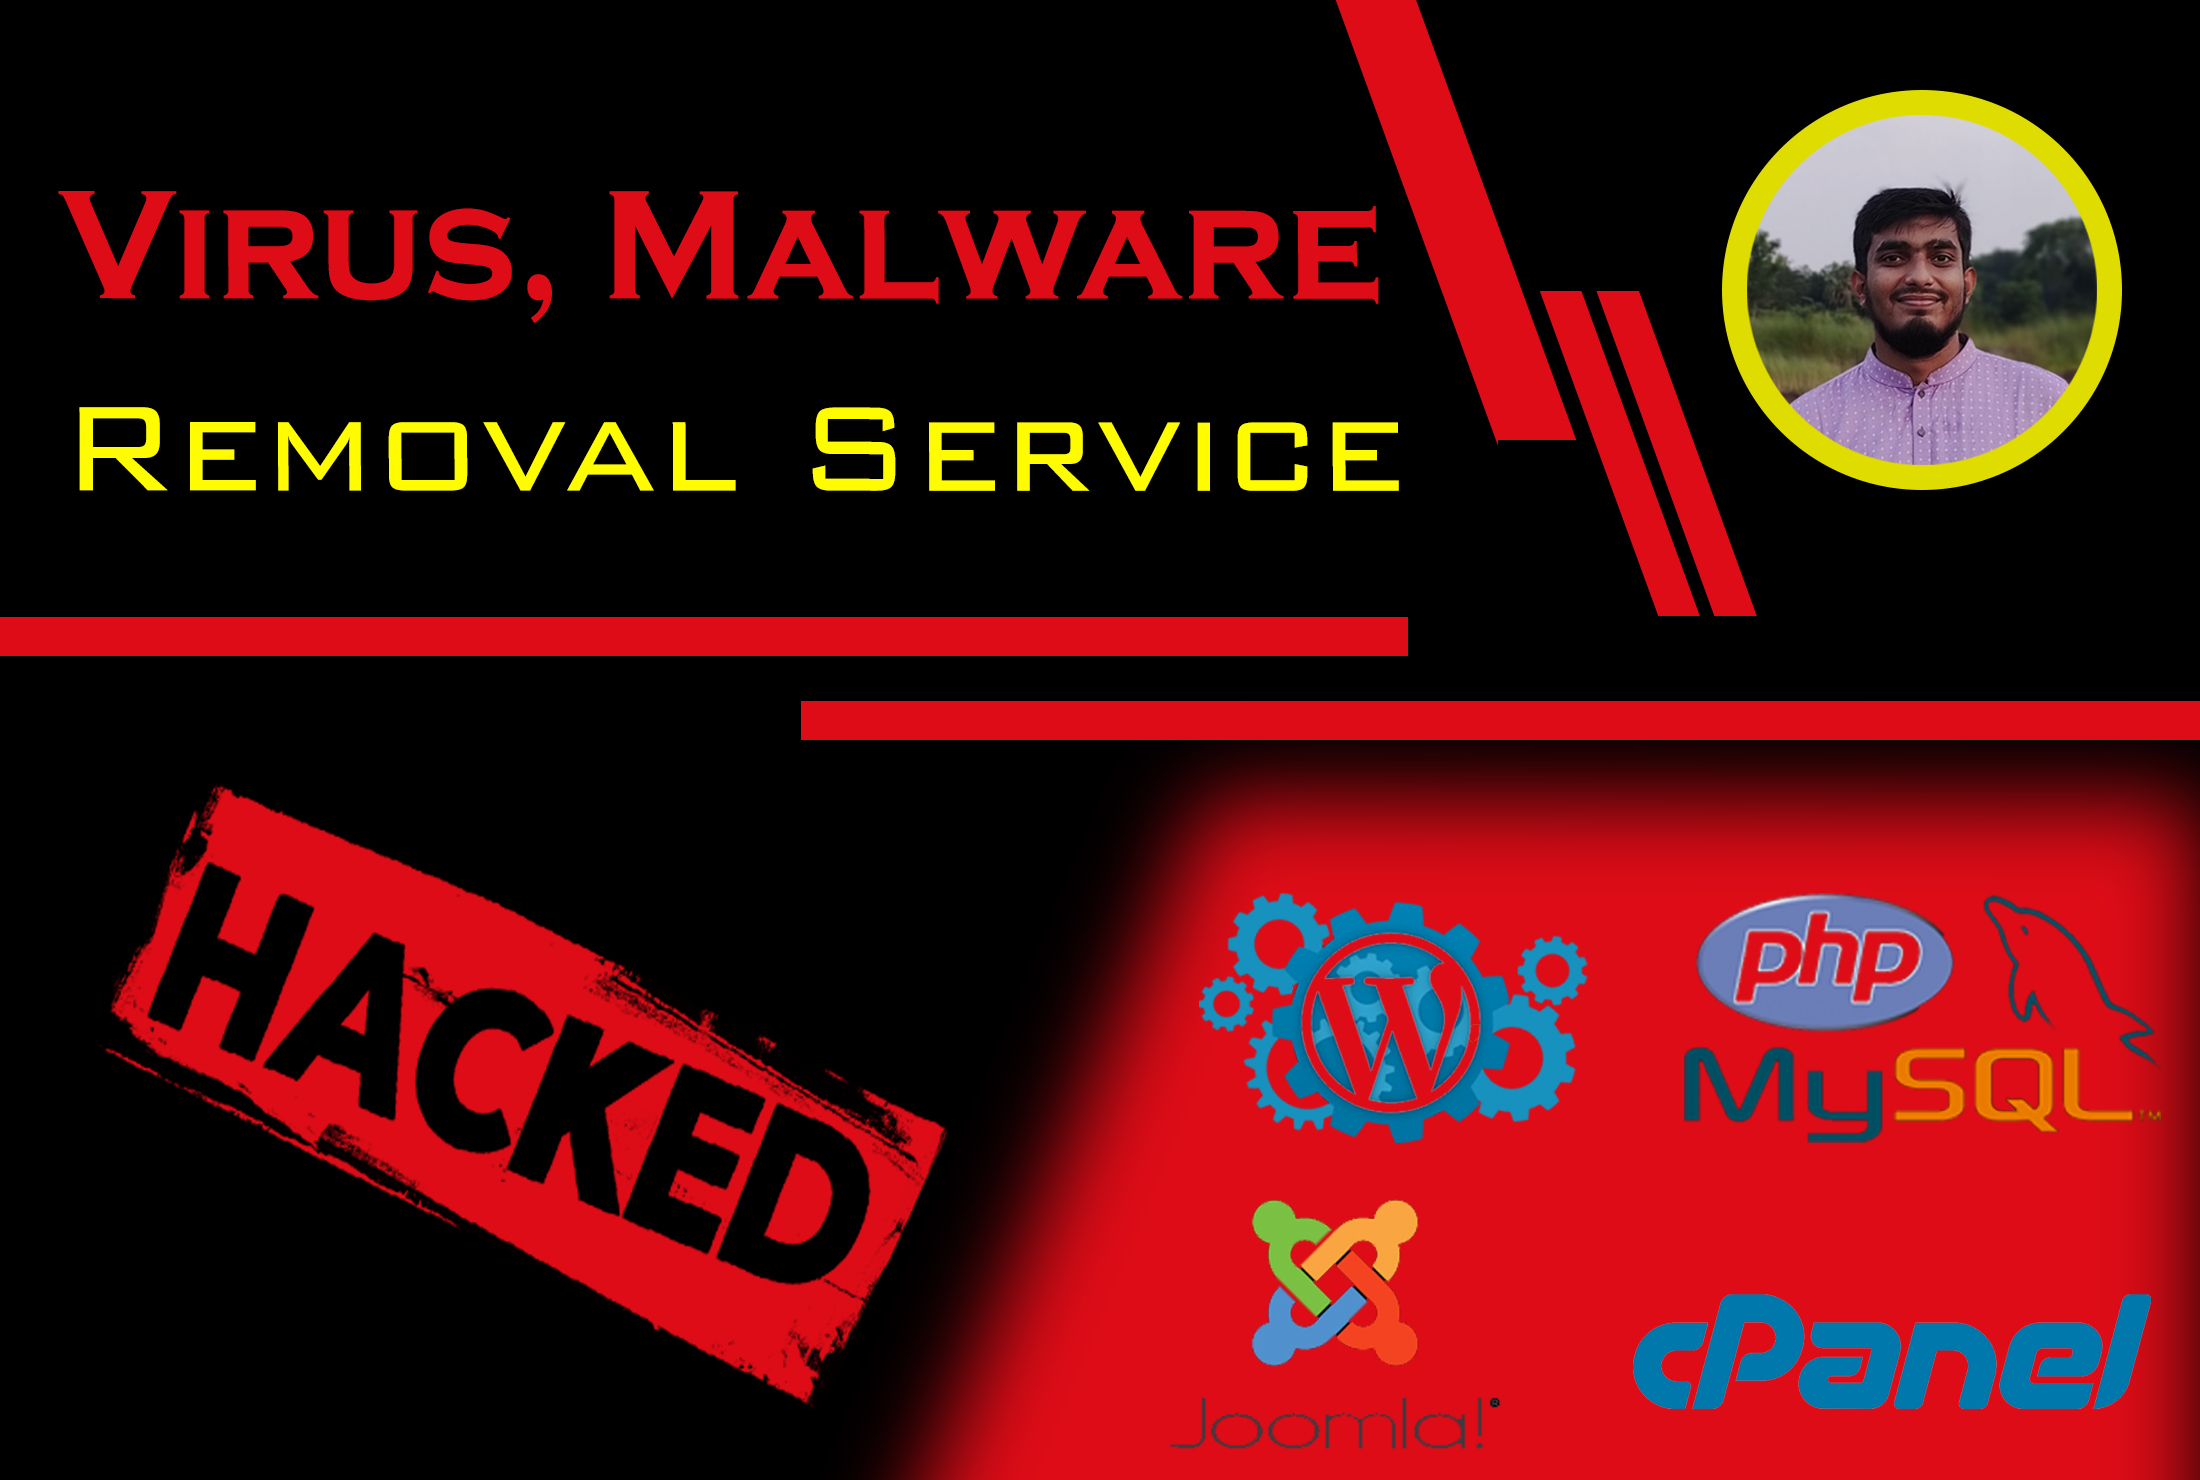 Remove malware and fix hacked websites and security